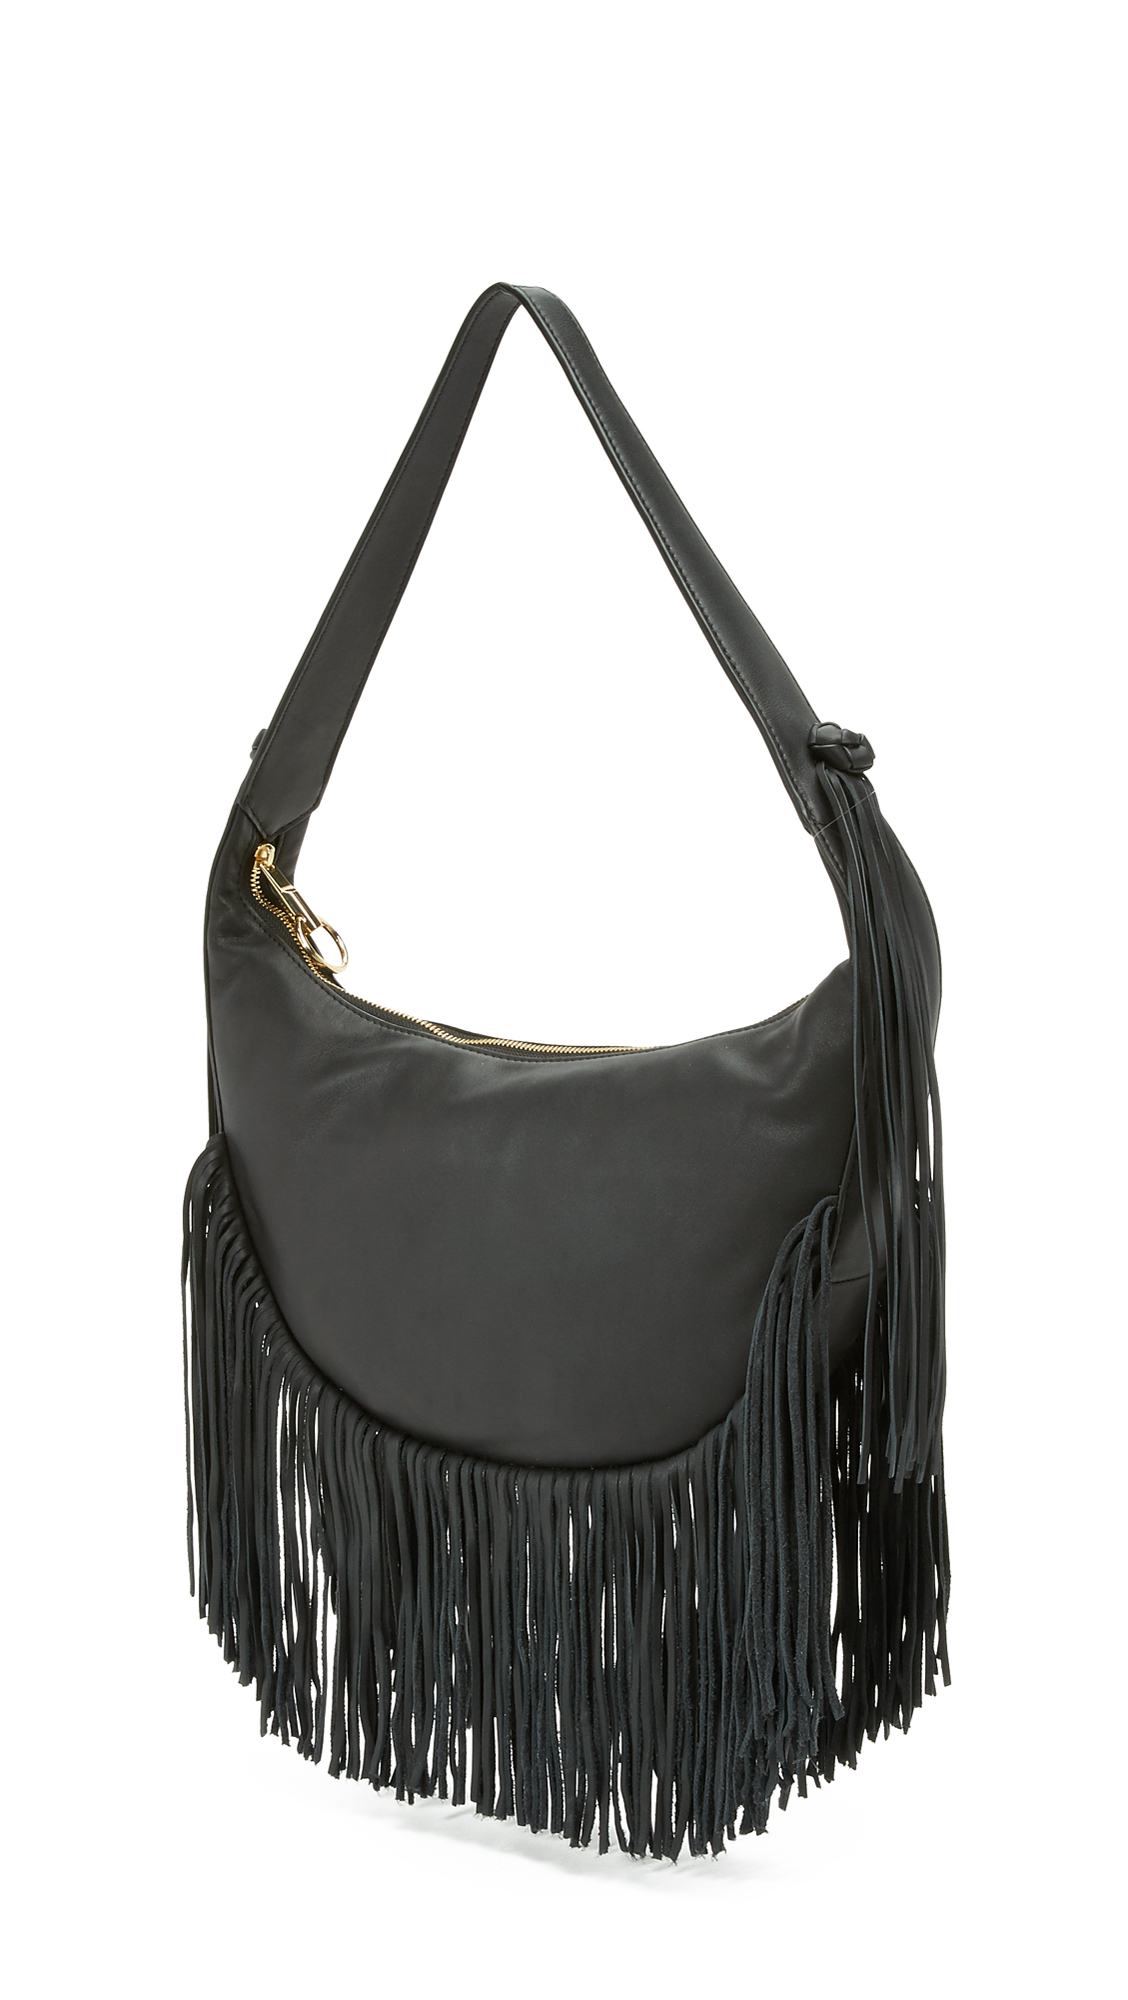 Elizabeth and james Zoe Fringe Hobo Bag in Black | Lyst